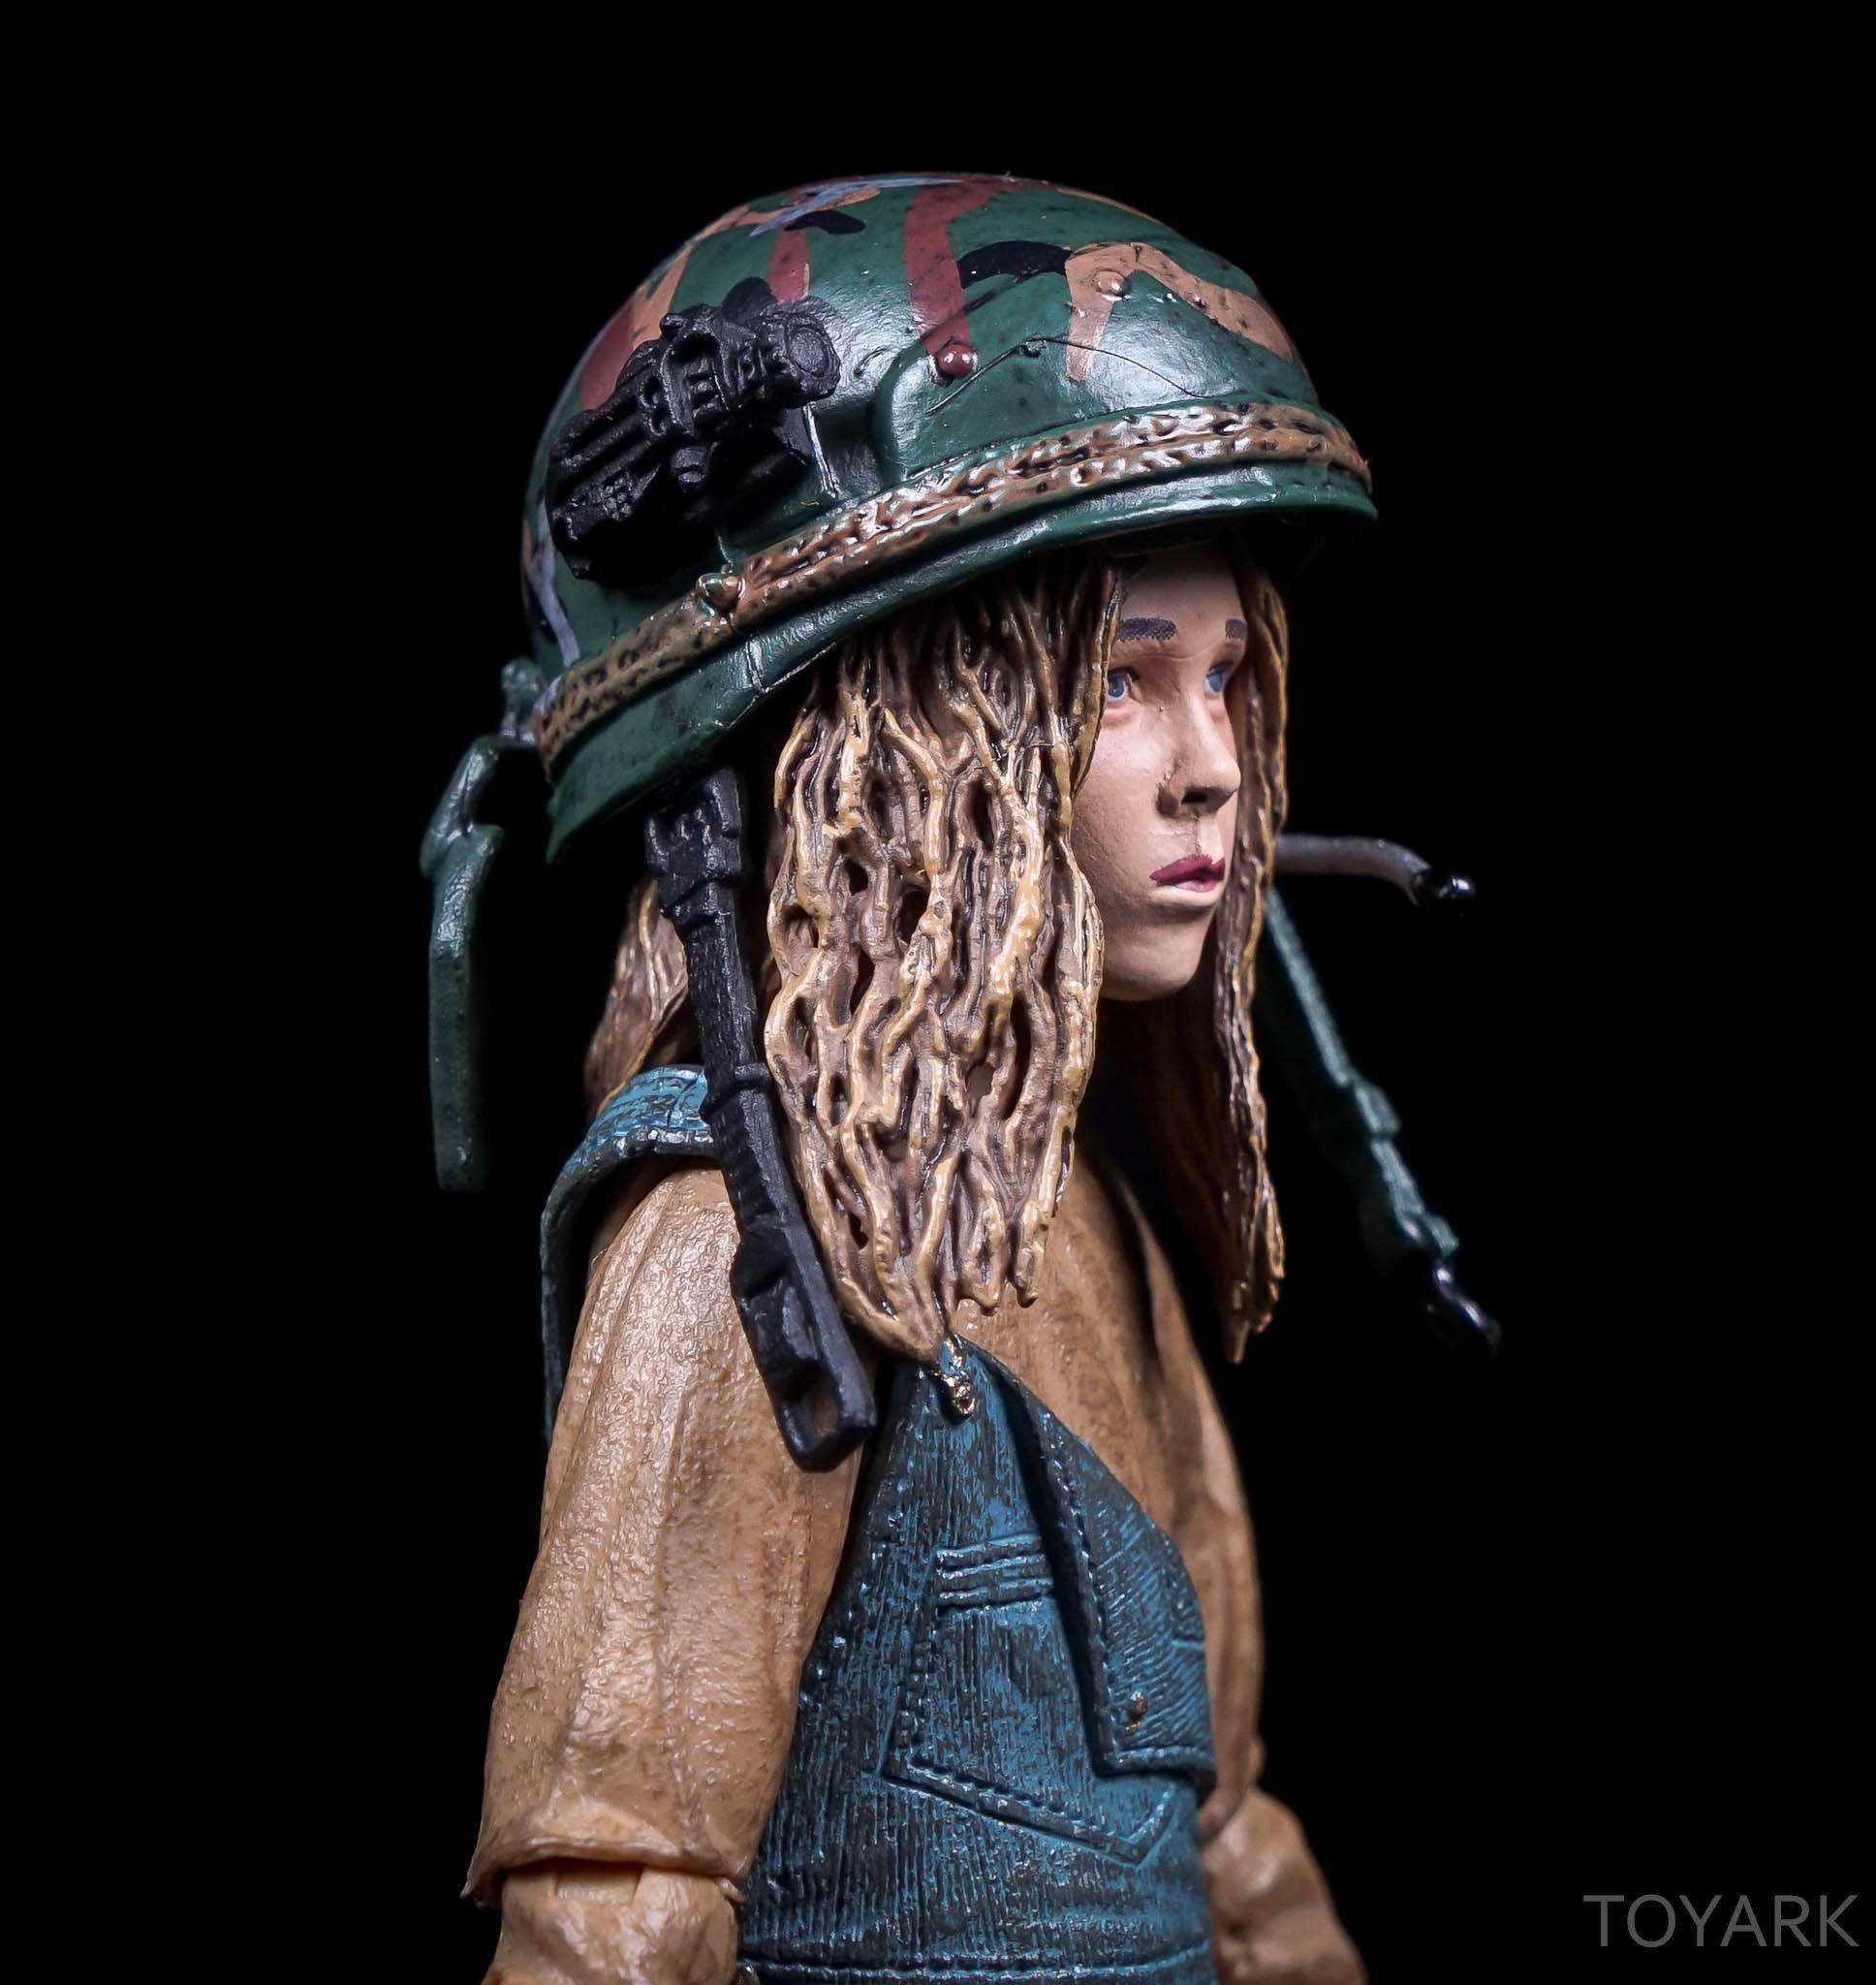 http://news.toyark.com/wp-content/uploads/sites/4/2016/08/NECA-SDCC2016-Aliens-Newt-016.jpg